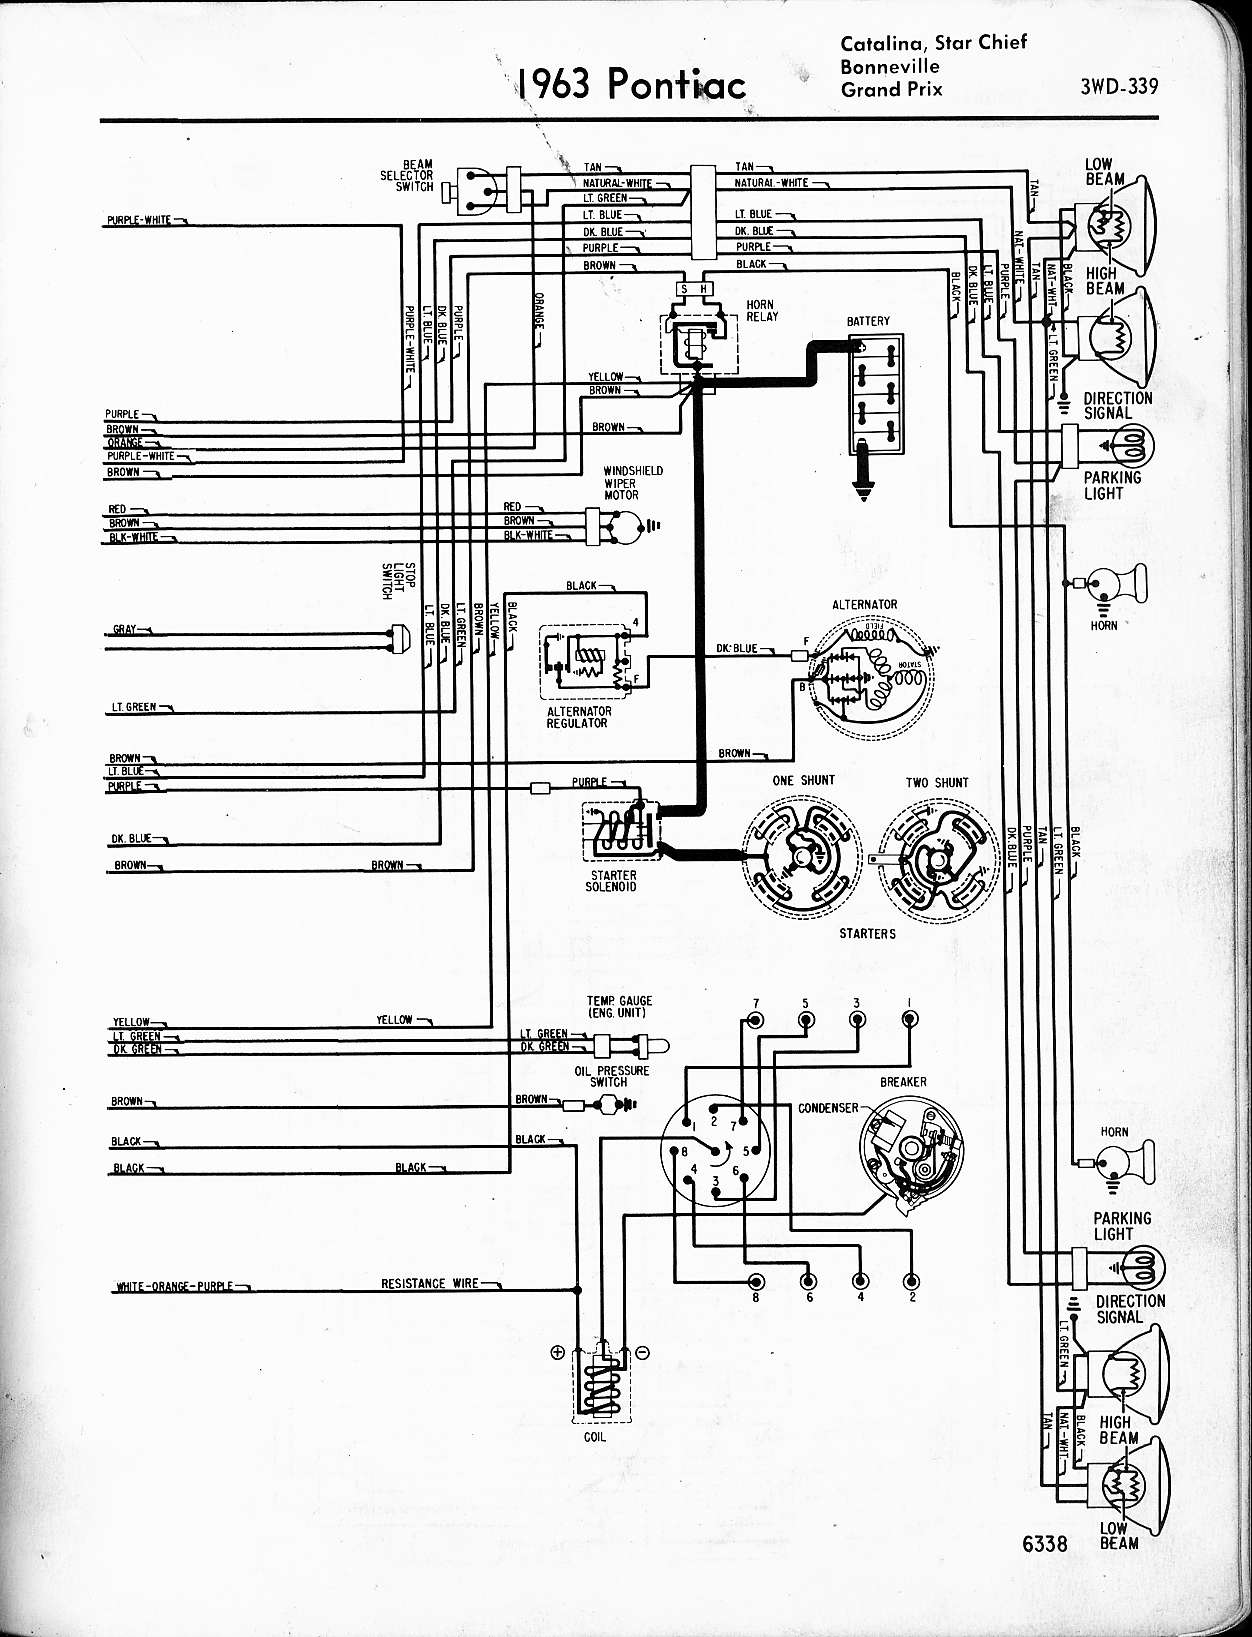 Toyota 2jzgte Engine in addition 2jz Gte Manual likewise 2jzgte Wiring Harness together with Gy6 50cc Scooter Wiring Diagram in addition 3sgte Wiring Diagram. on wiring diagram toyota 1jz gte vvti